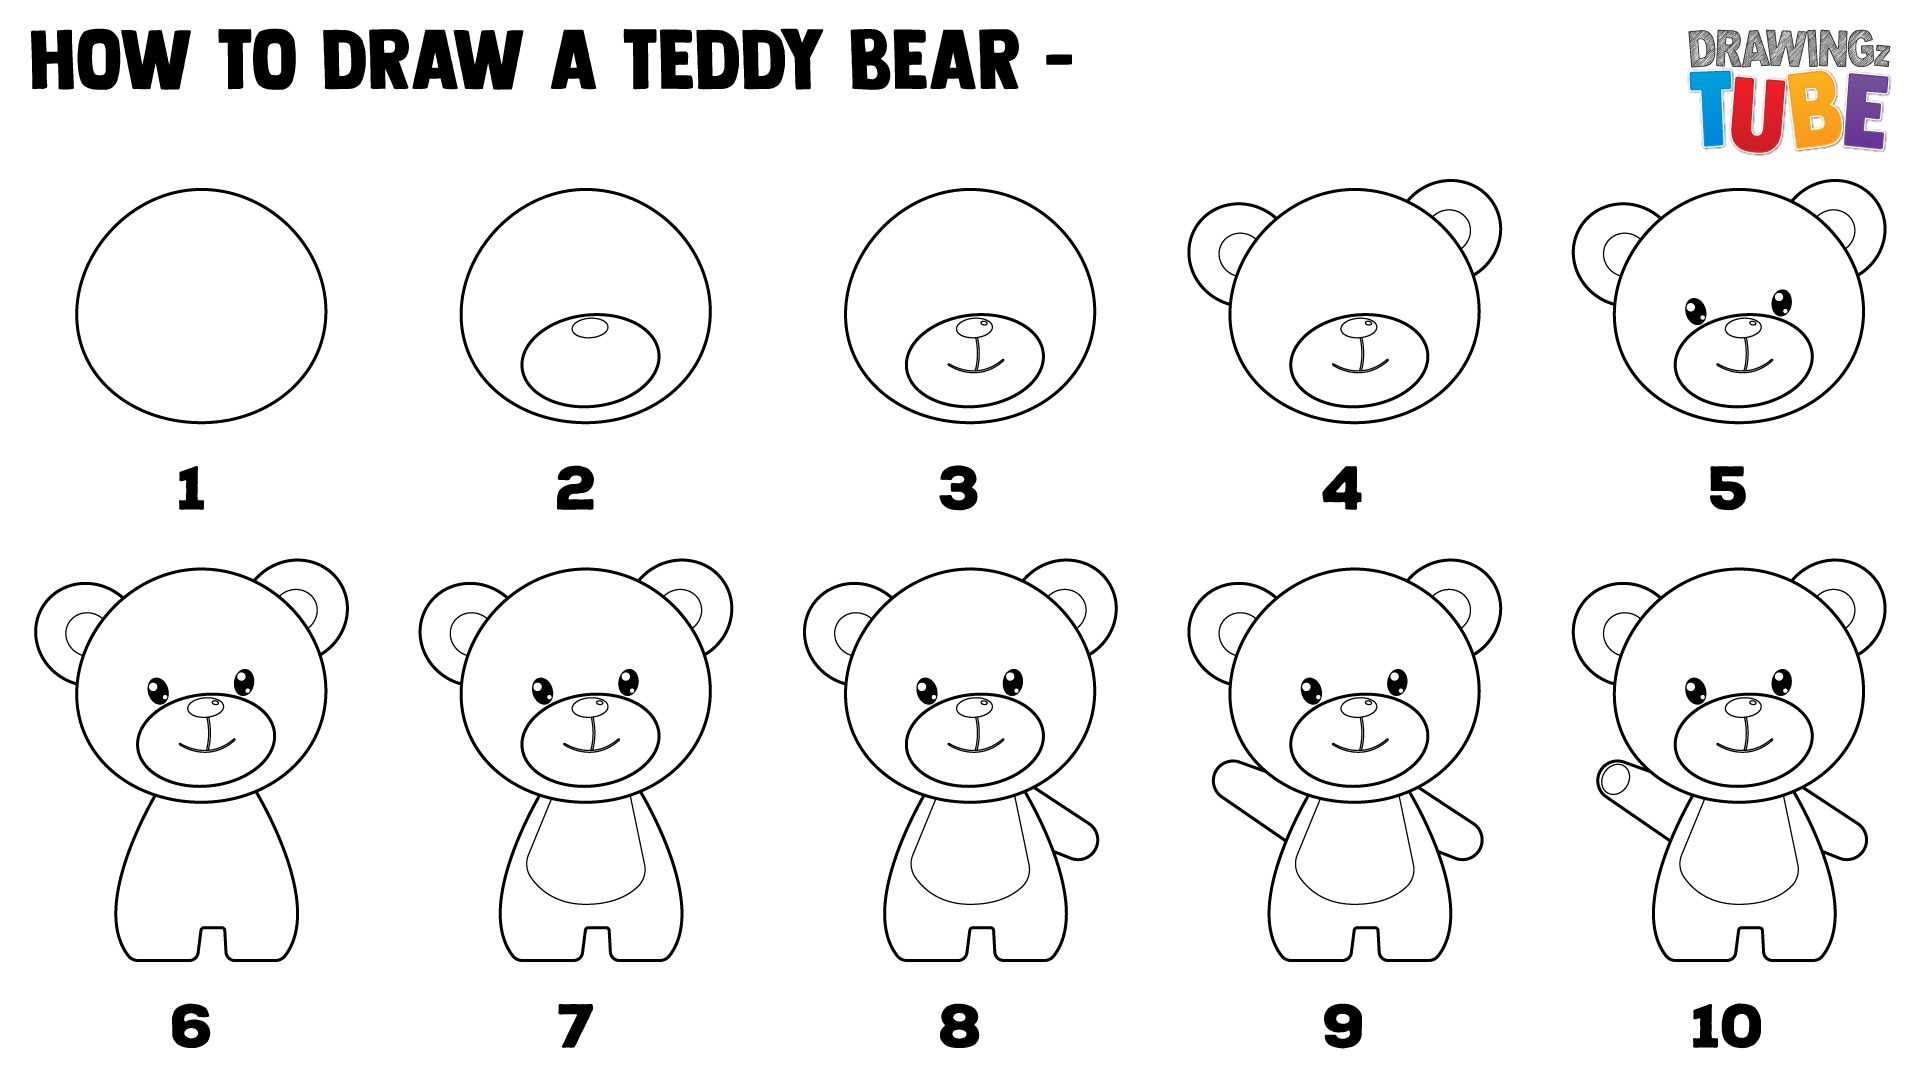 how to draw a bear step by step how to draw a teddy bear step by step tutorial batch a bear to by how step step draw